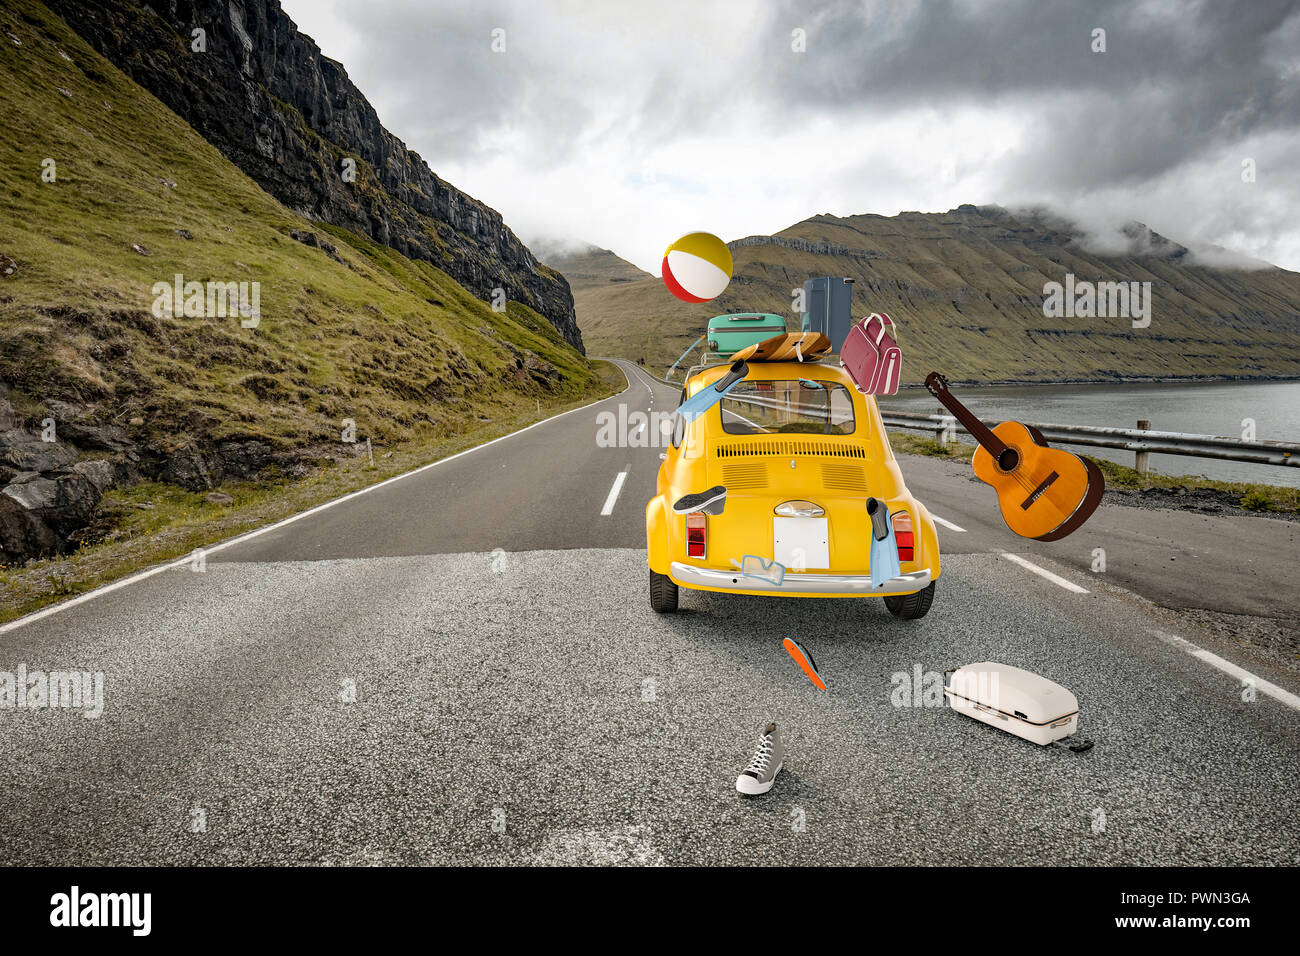 old fashion car and falling beach stuff on lonely road 3d rendering image - Stock Image